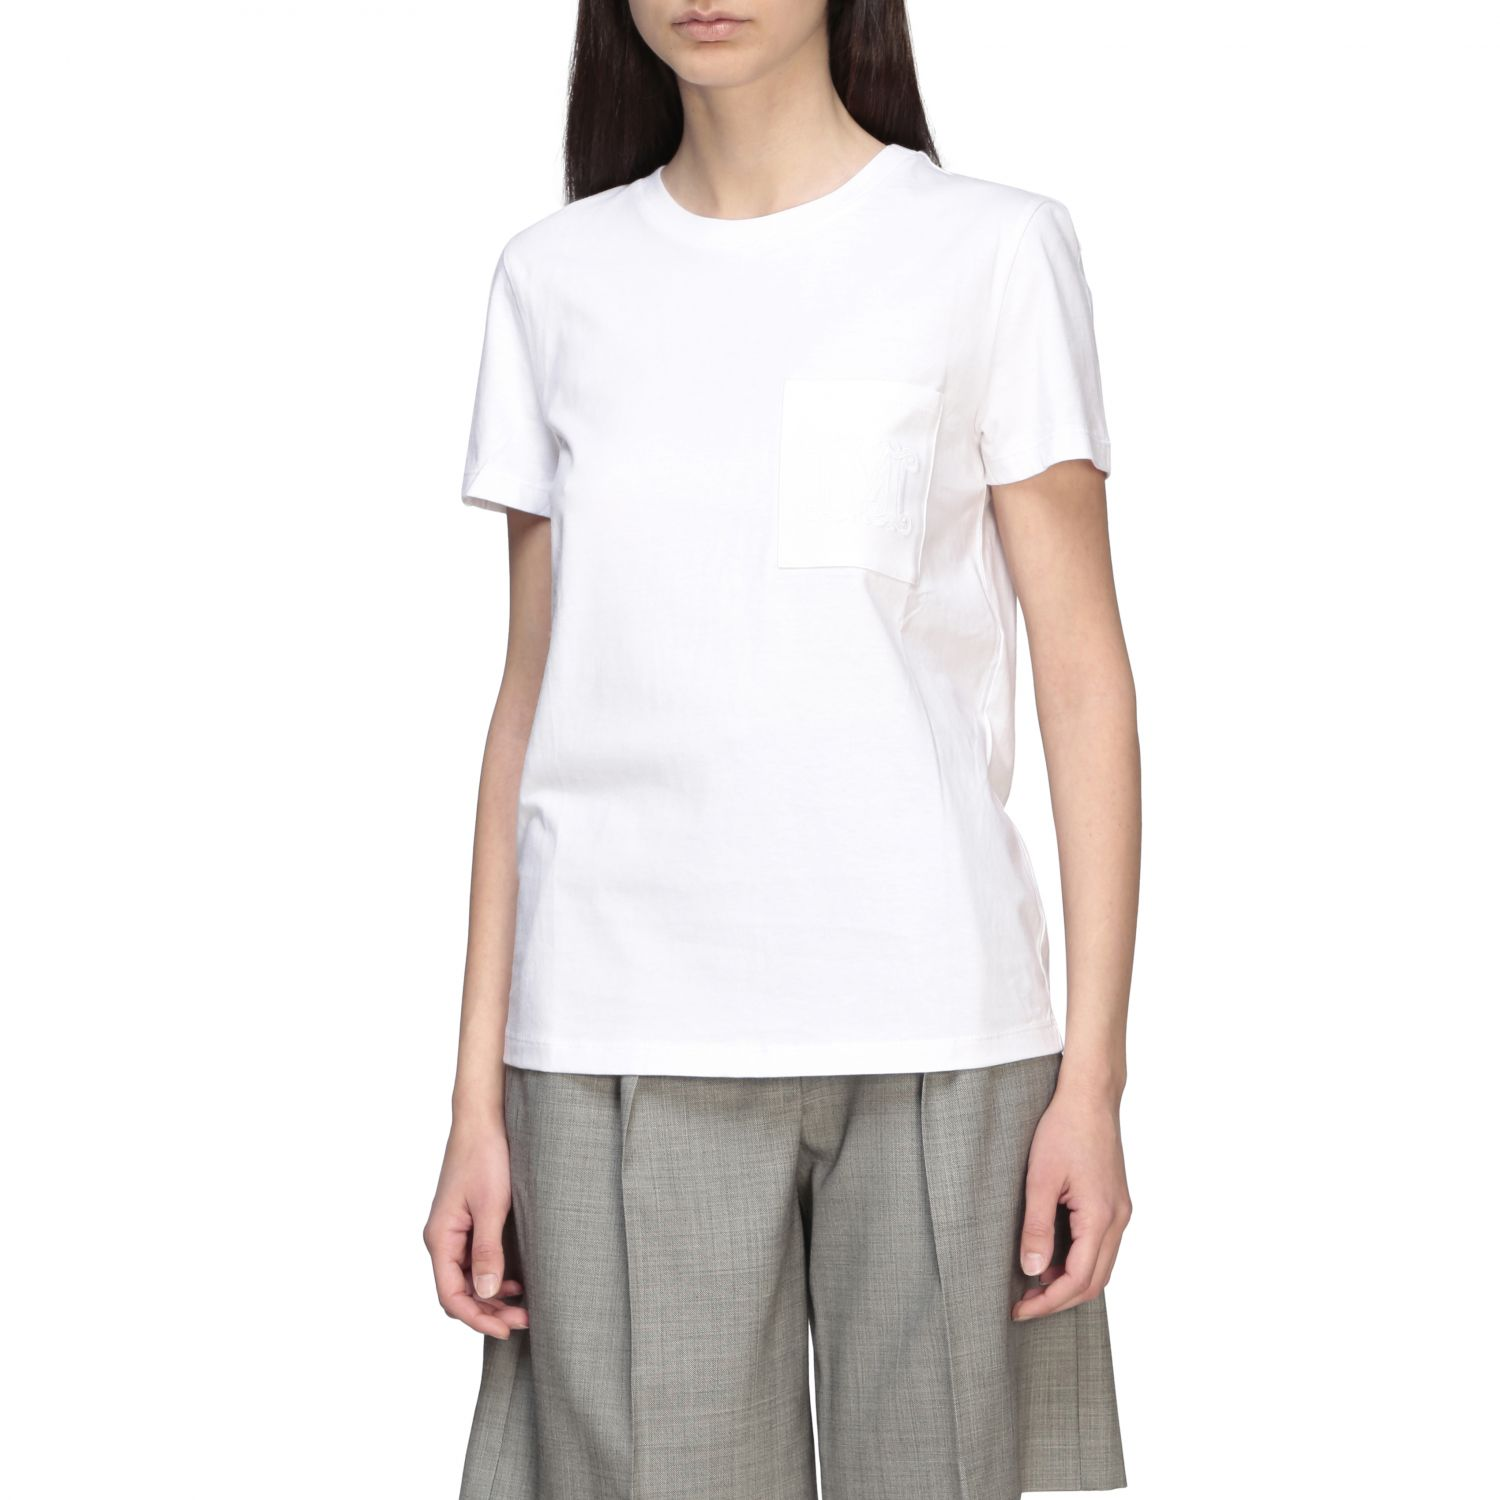 T-shirt women Max Mara white 4